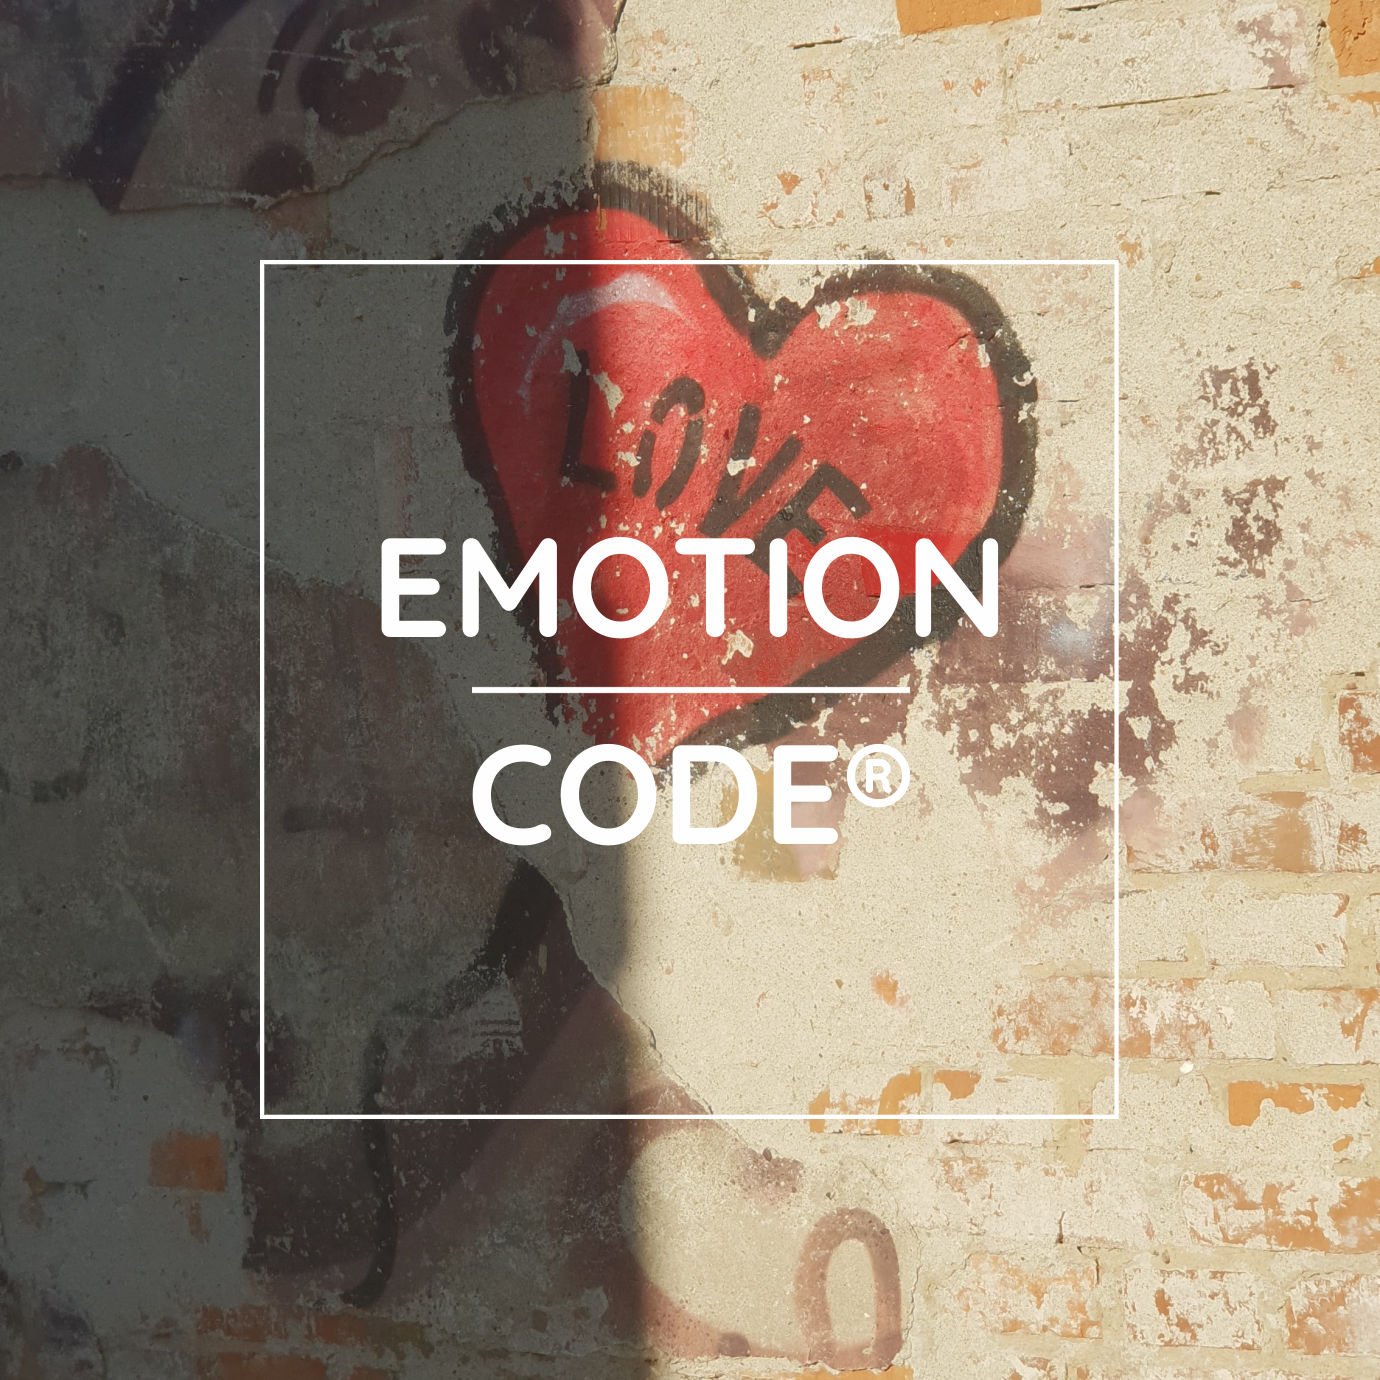 The Emotion Code® Heart-Wall